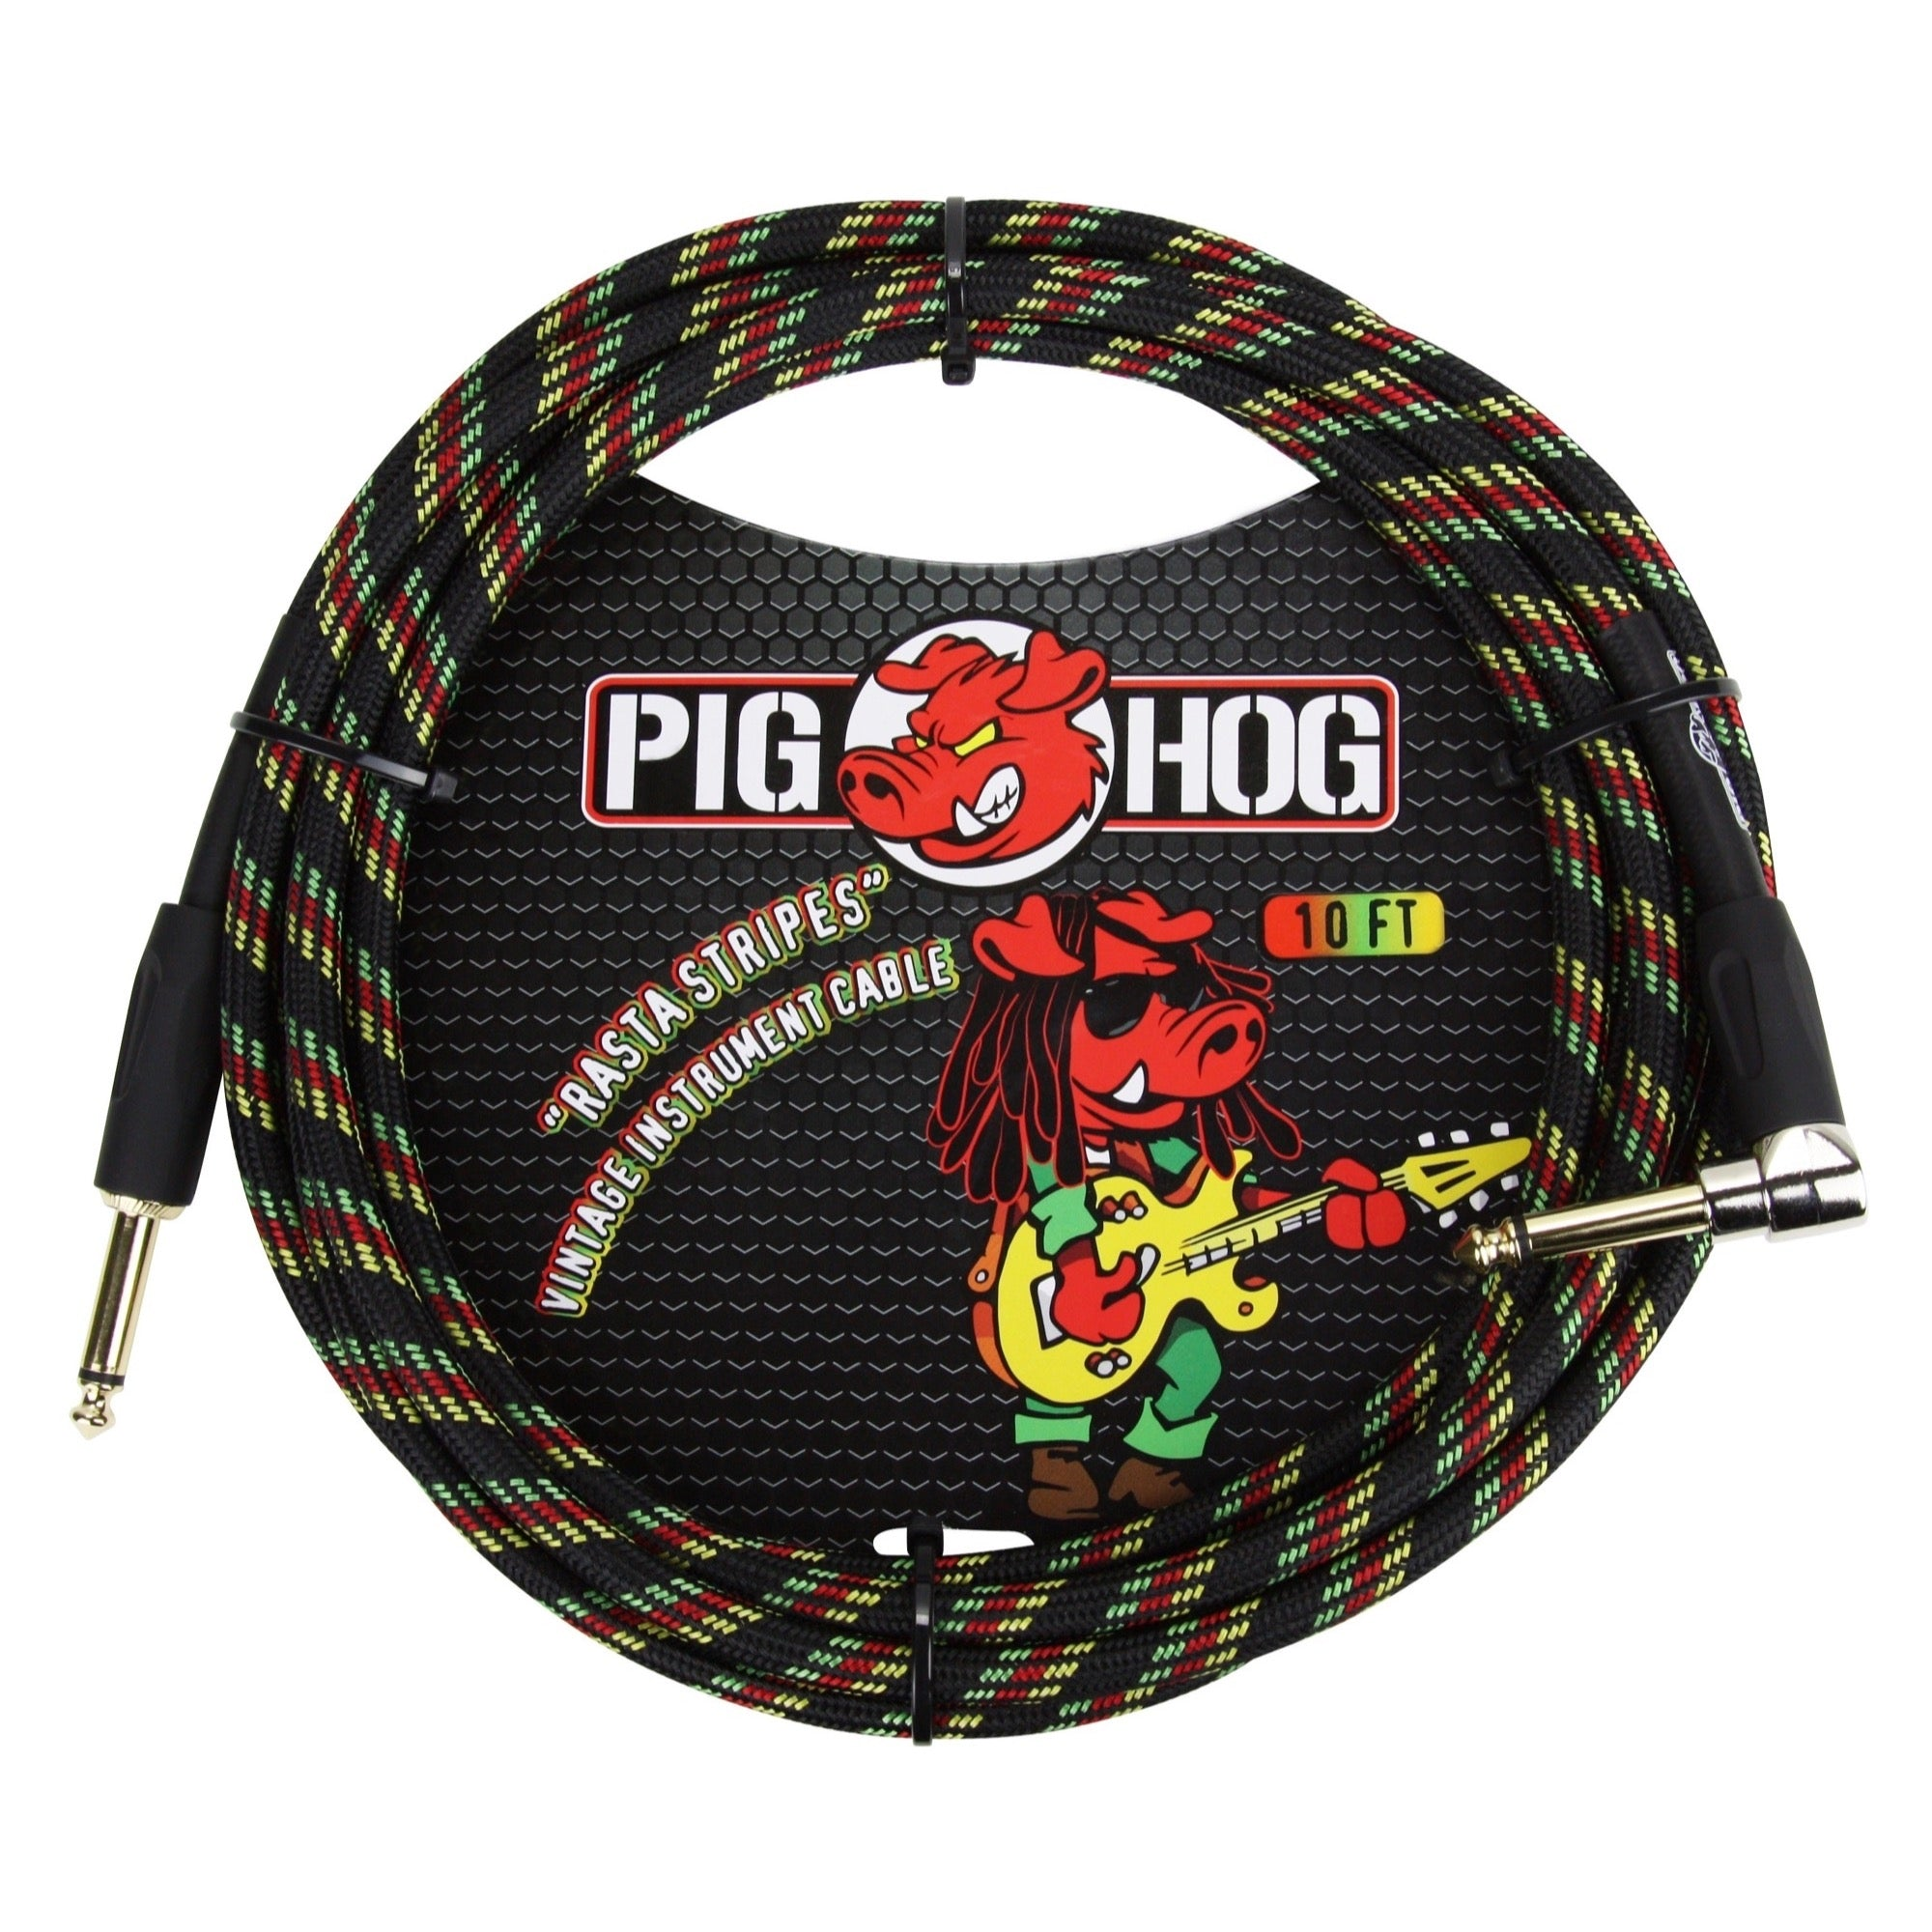 Pig Hog Color Instrument Cable, 1/4 Inch Straight to 1/4 Inch Right Angle, Rasta Stripe, 10 Foot